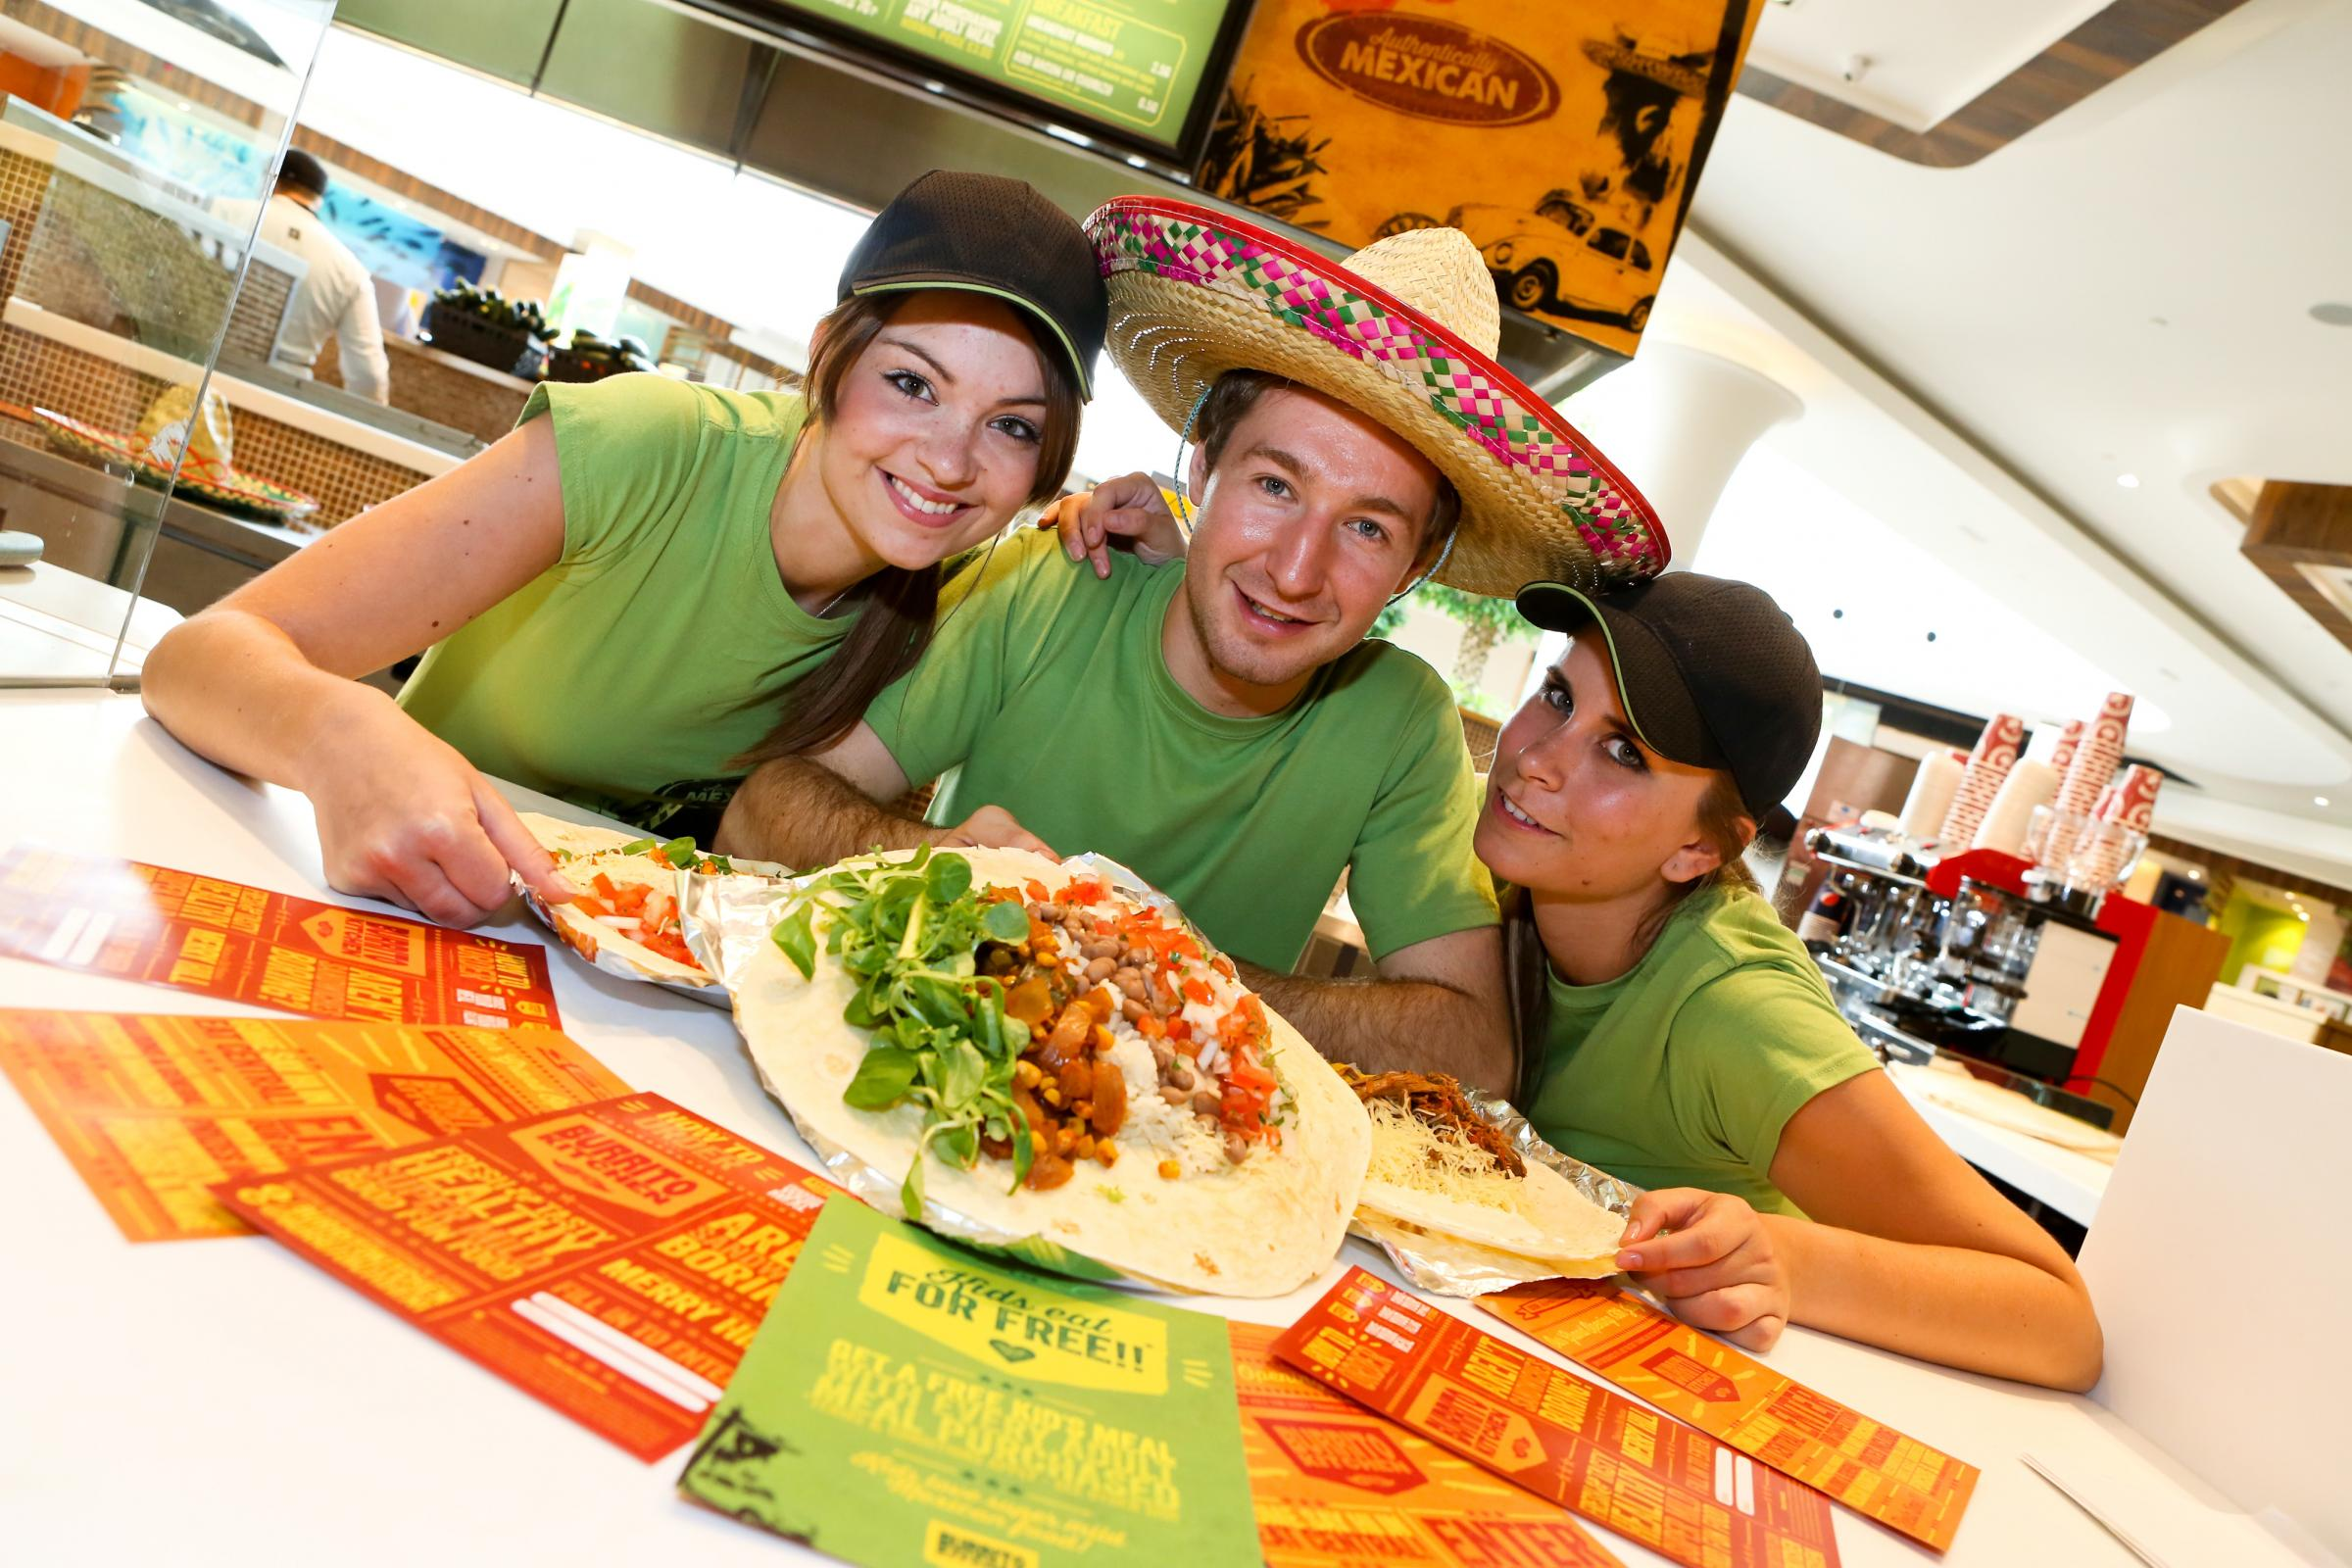 Tim Stillwell and the team at Burrito Kitchen will have special offers for customers throughout the event.